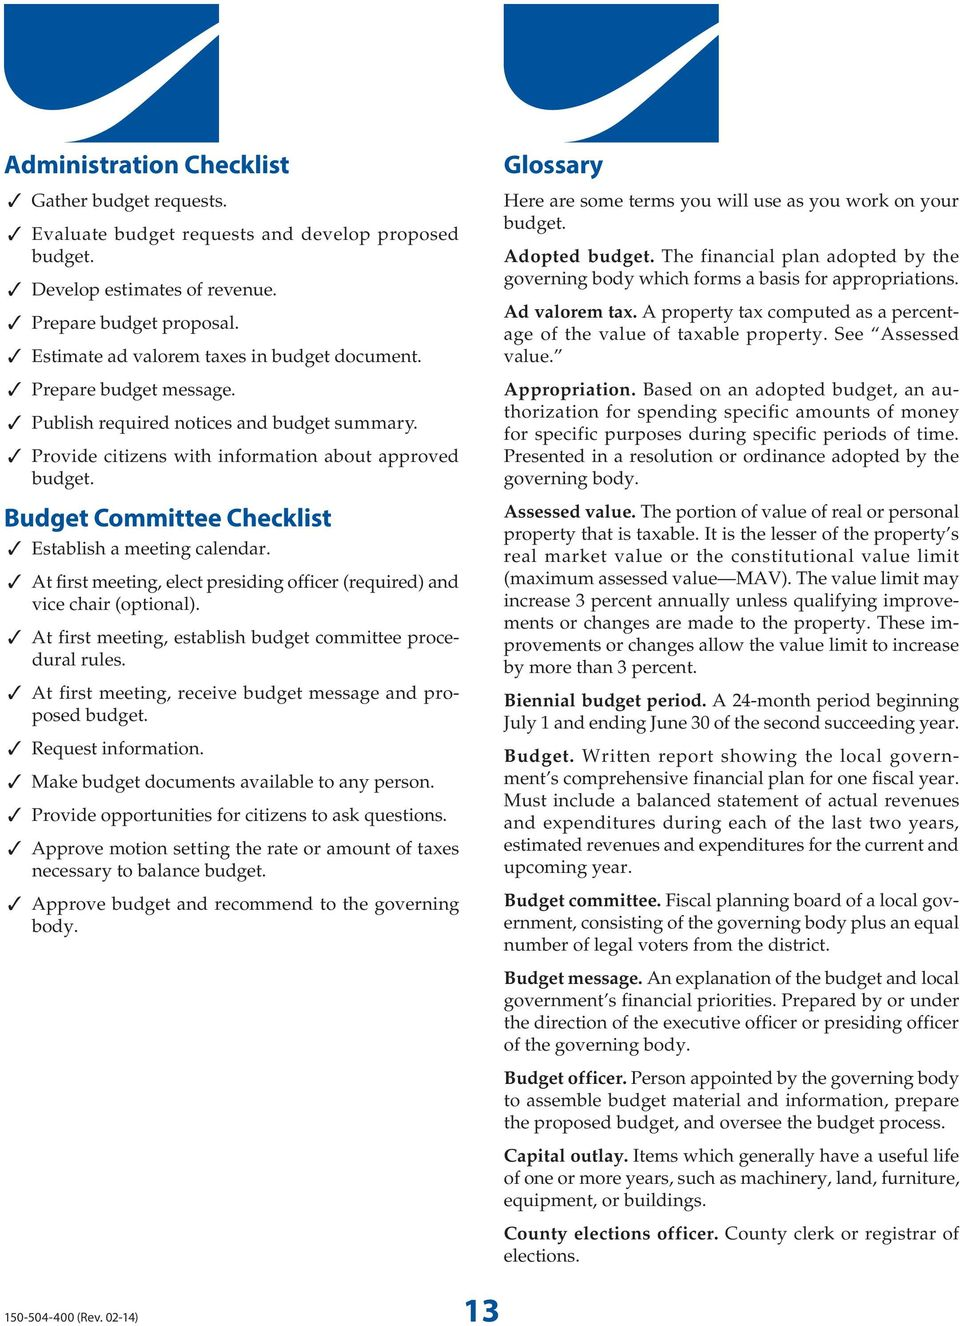 Budget Committee Checklist Establish a meeting calendar. At first meeting, elect presiding officer (required) and vice chair (optional). At first meeting, establish budget committee procedural rules.